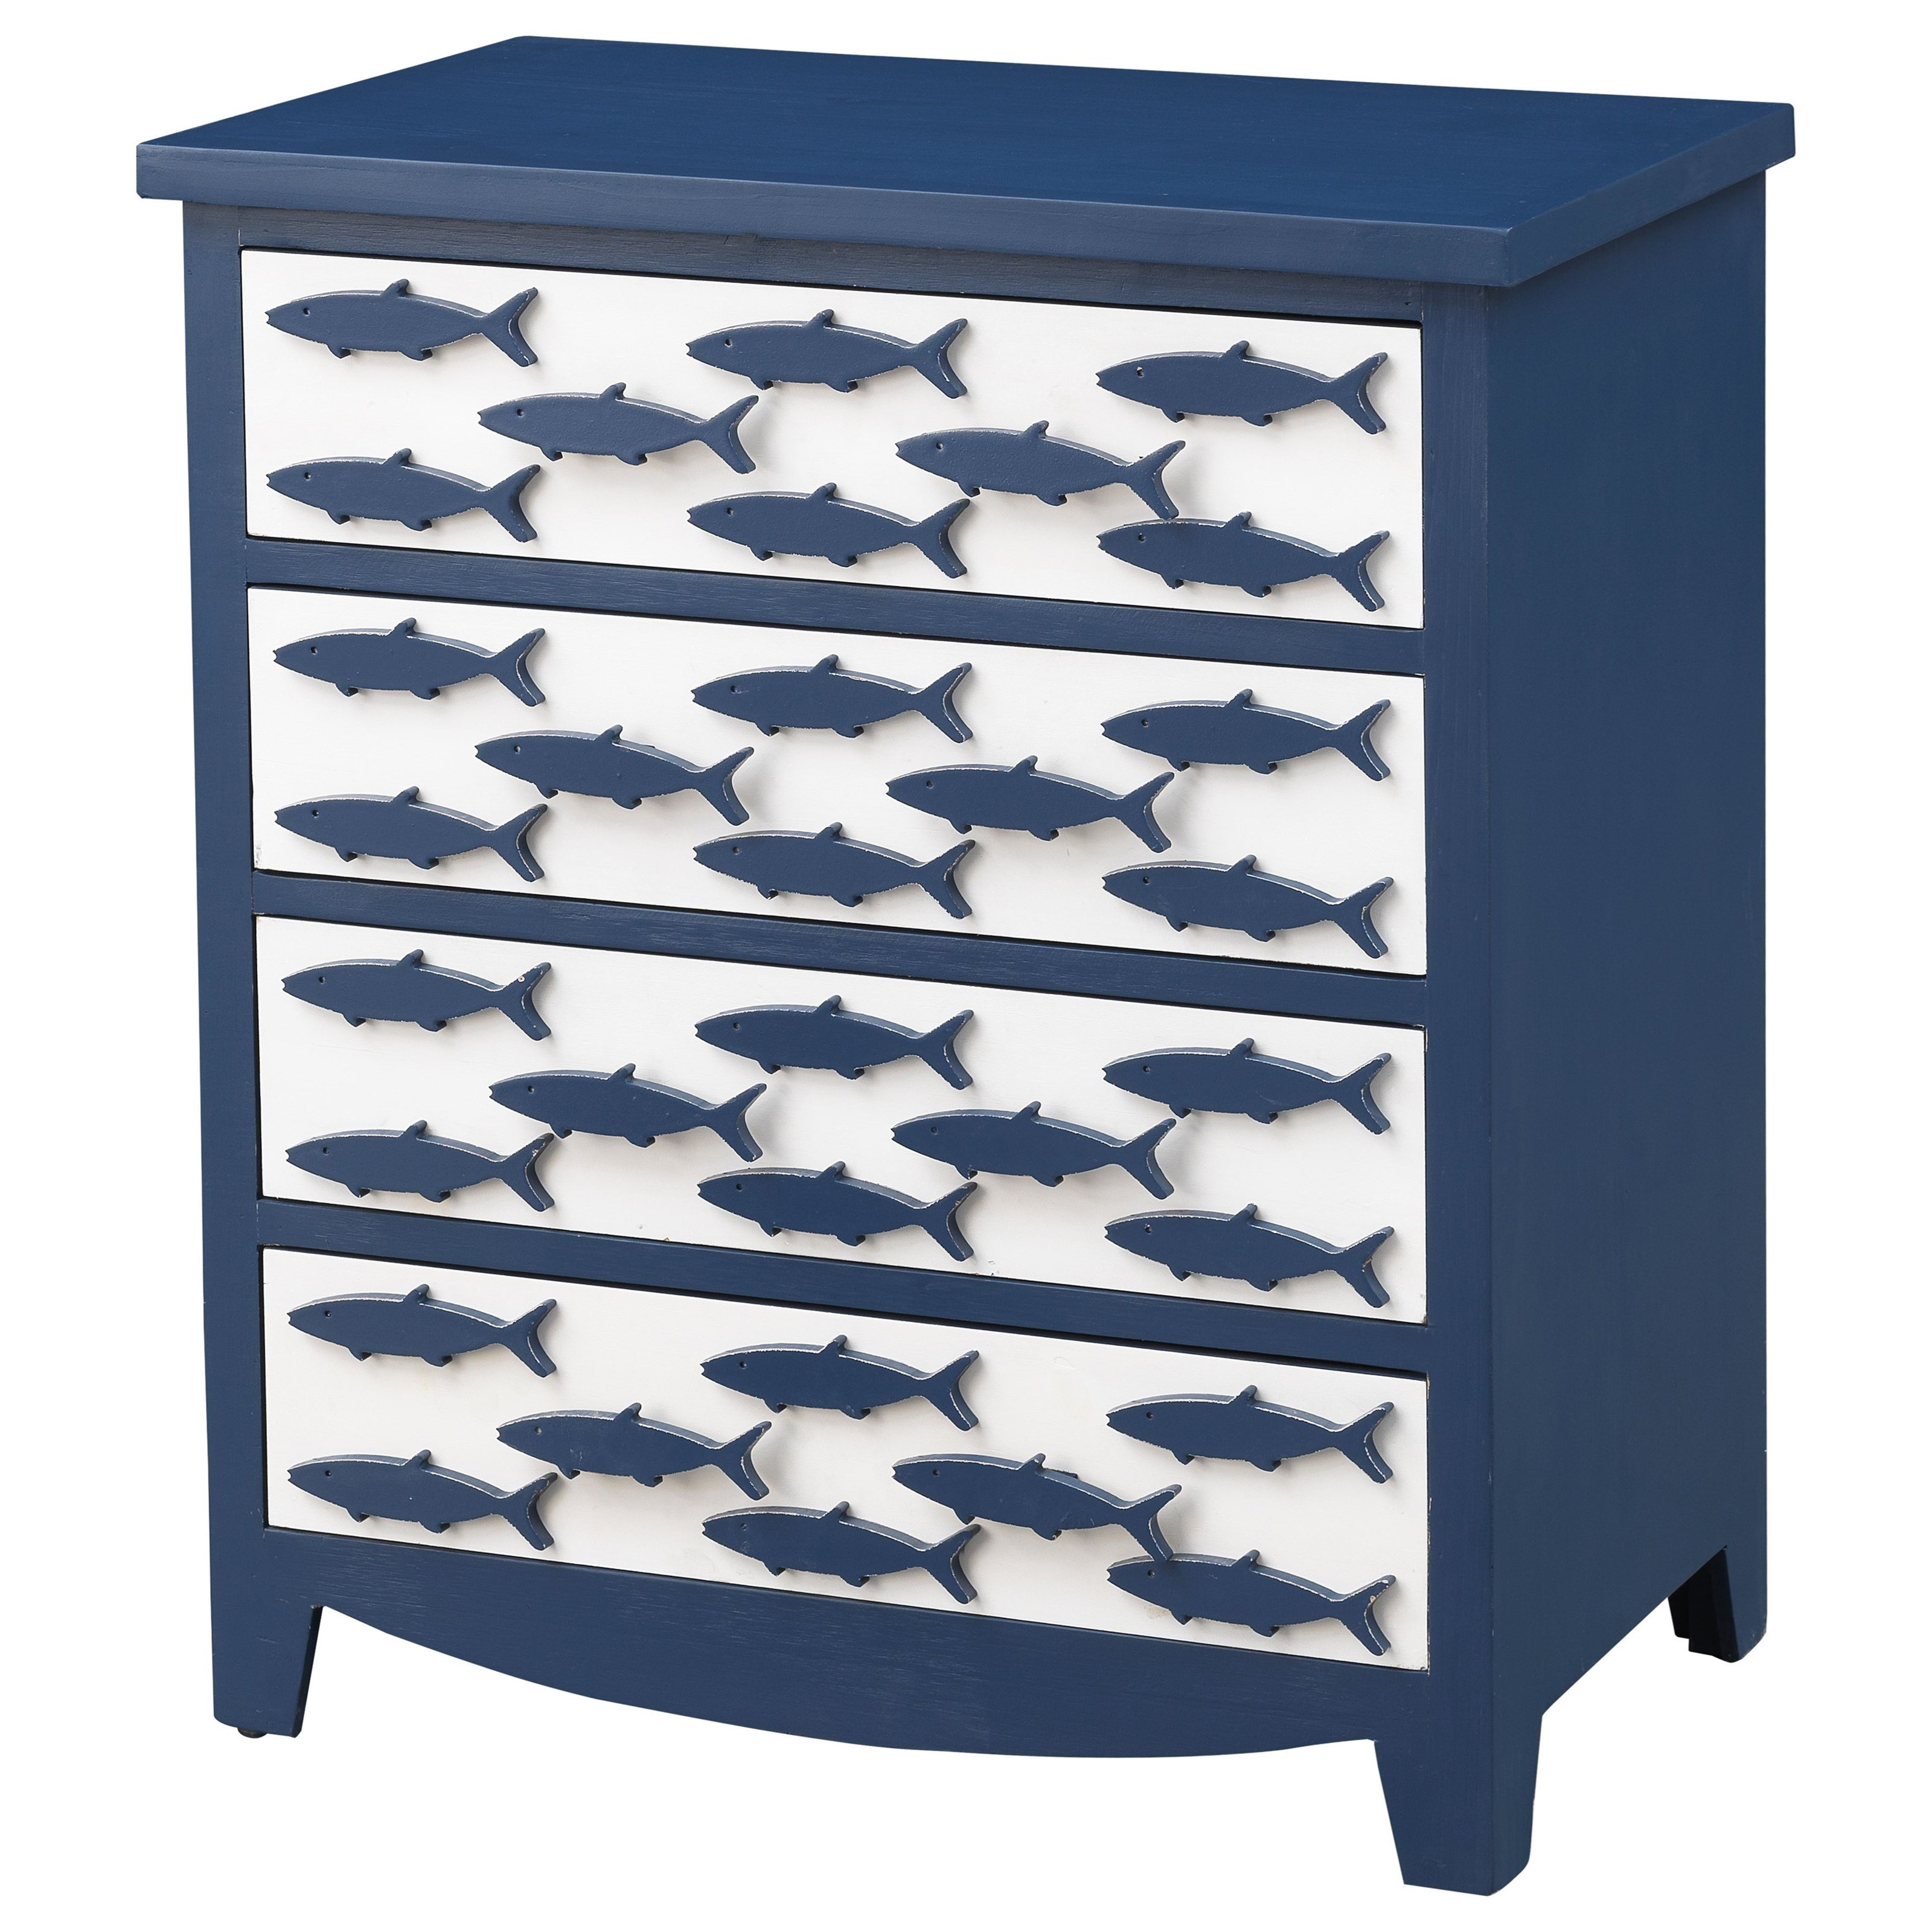 Pieces in Paradise 4-Drawer Chest by Coast to Coast Imports at Baer's Furniture